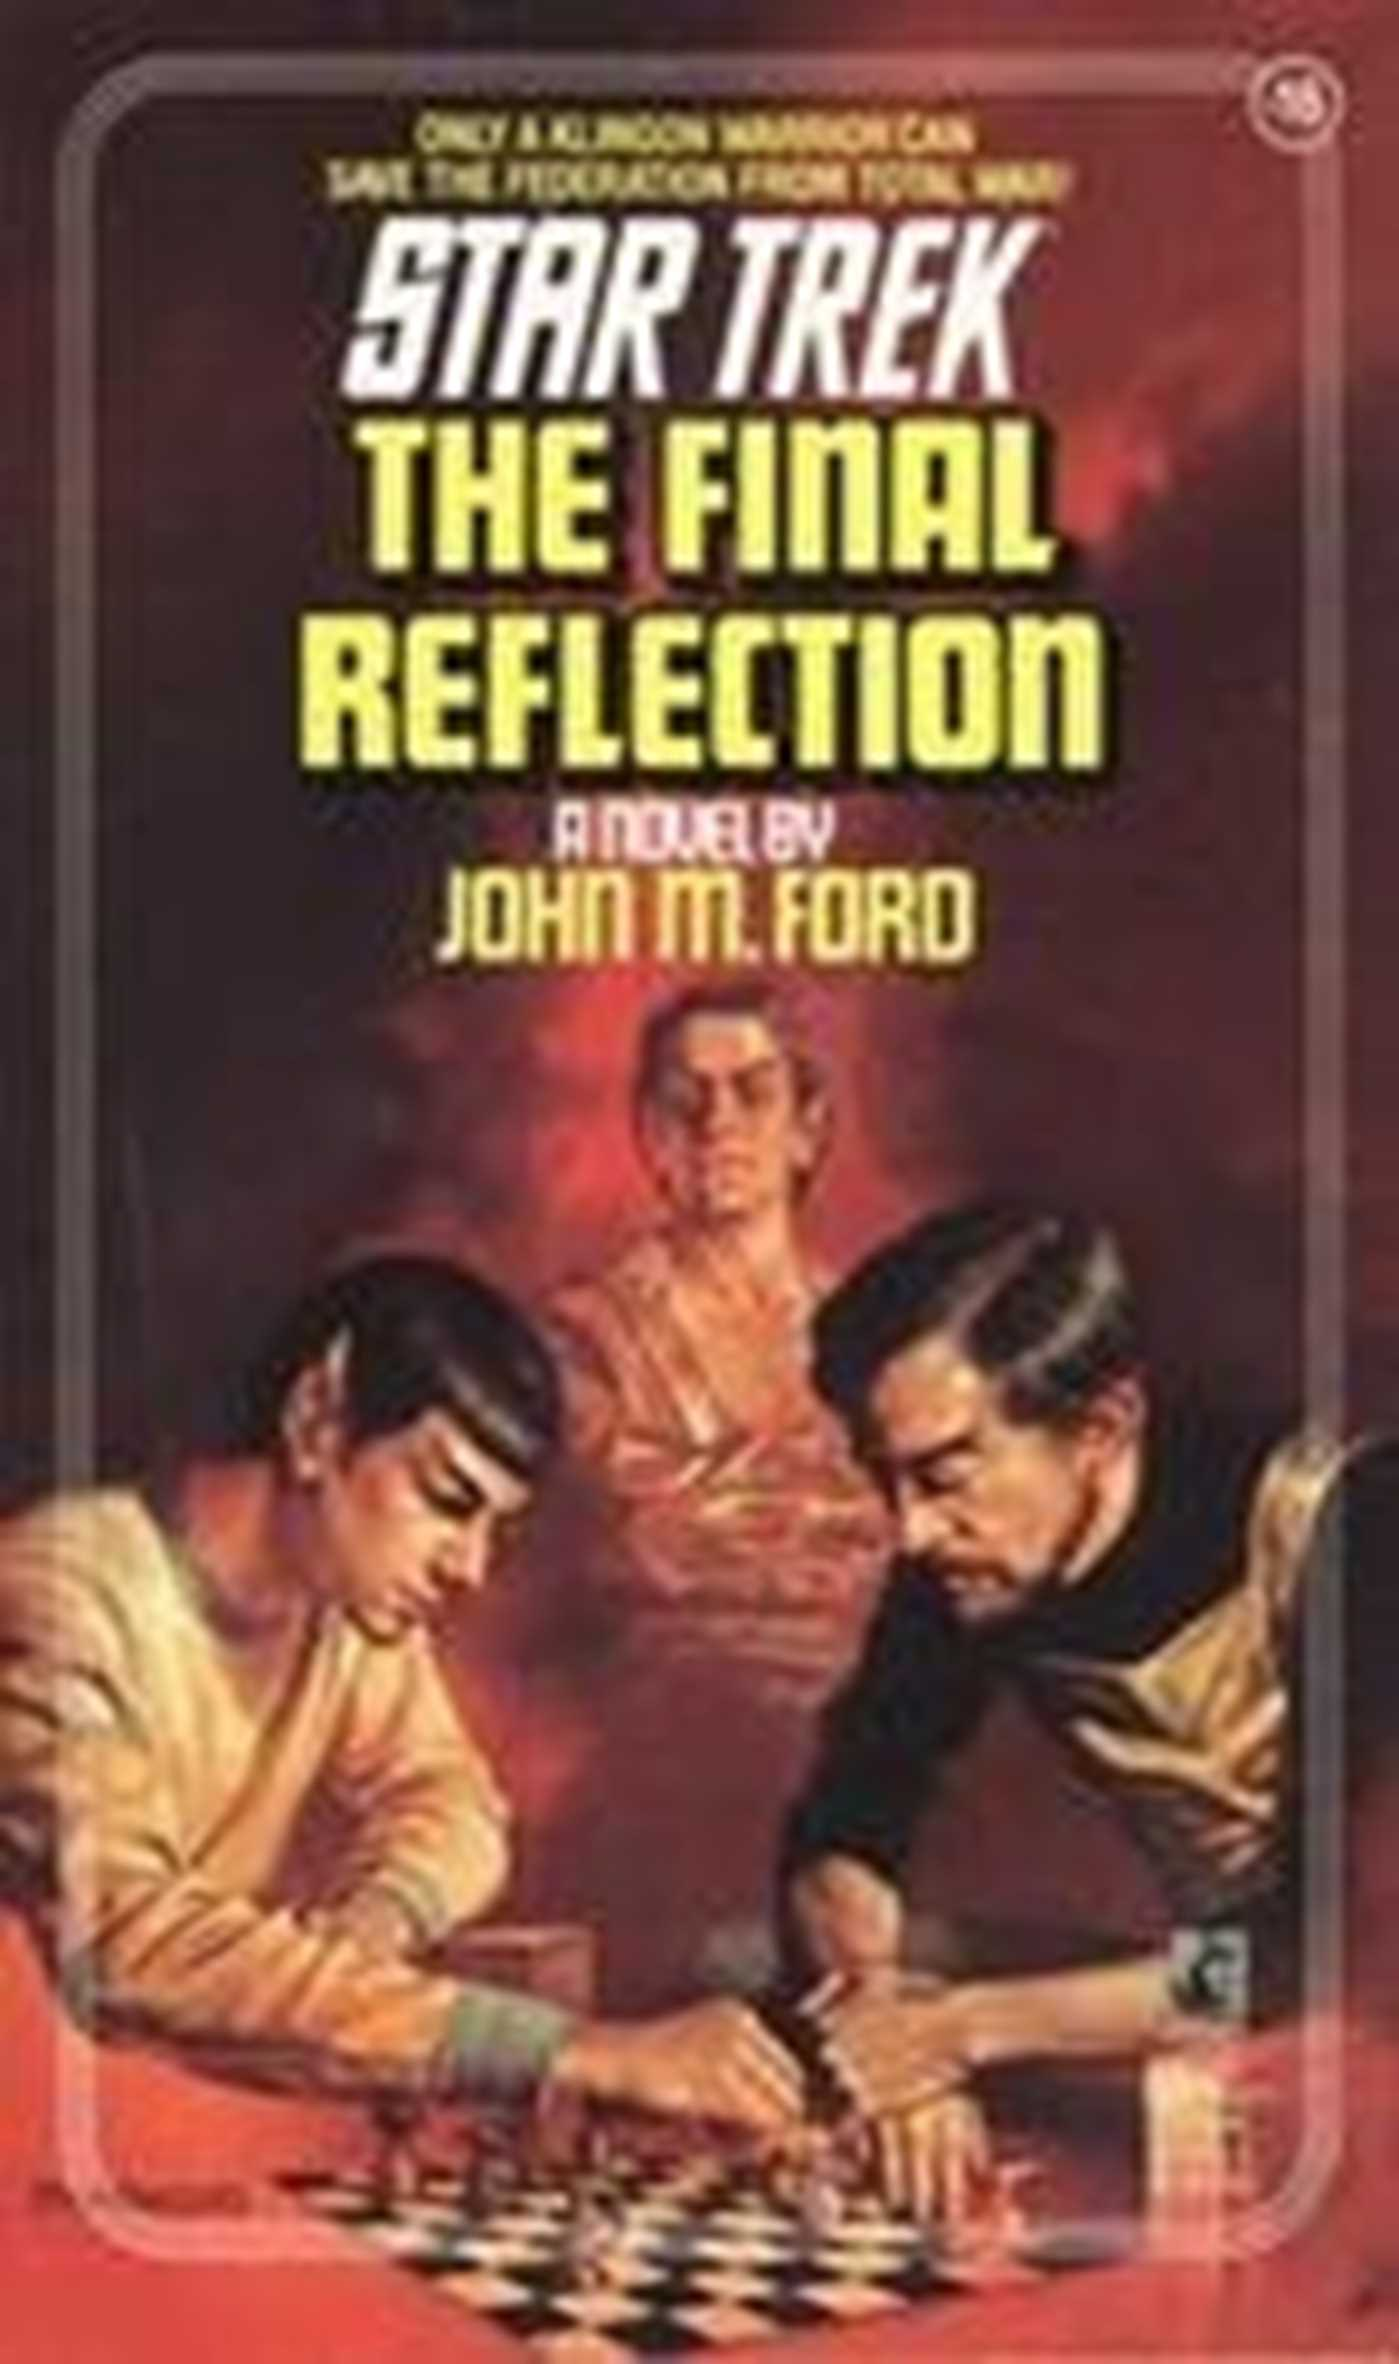 The-final-reflection-9780743419673_hr